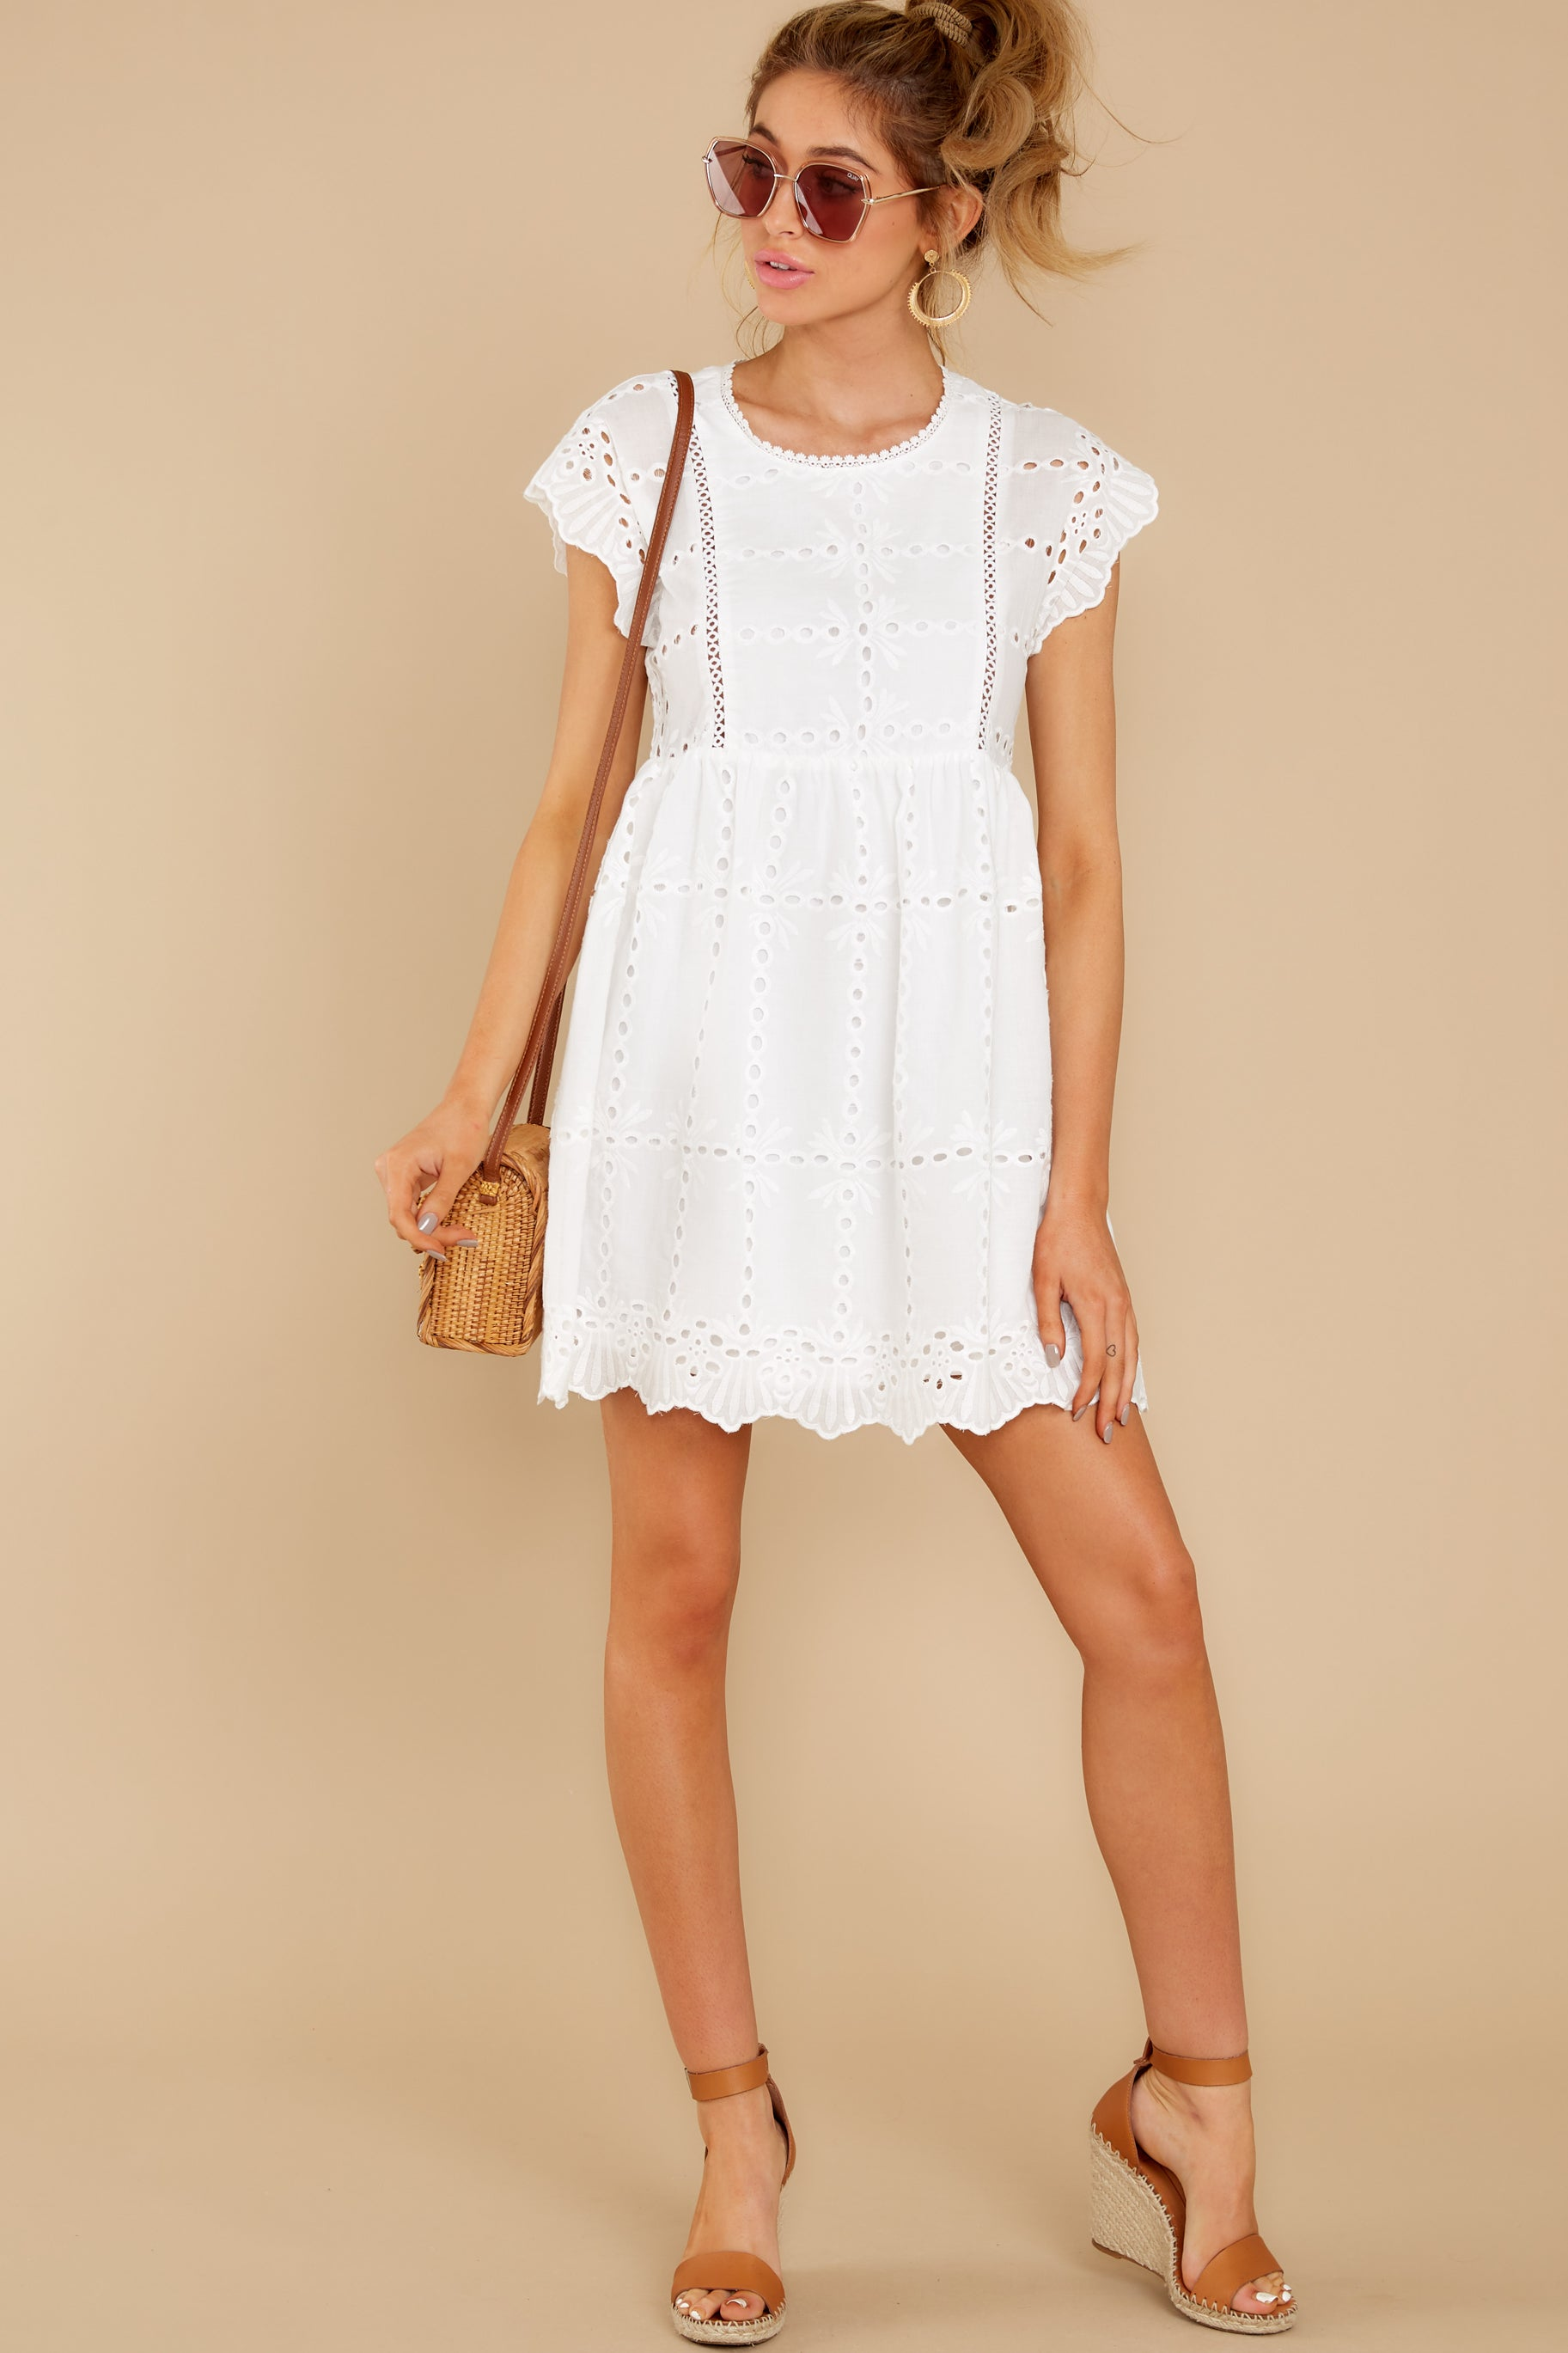 4 Better To Be Sweet White Eyelet Dress at reddress.com